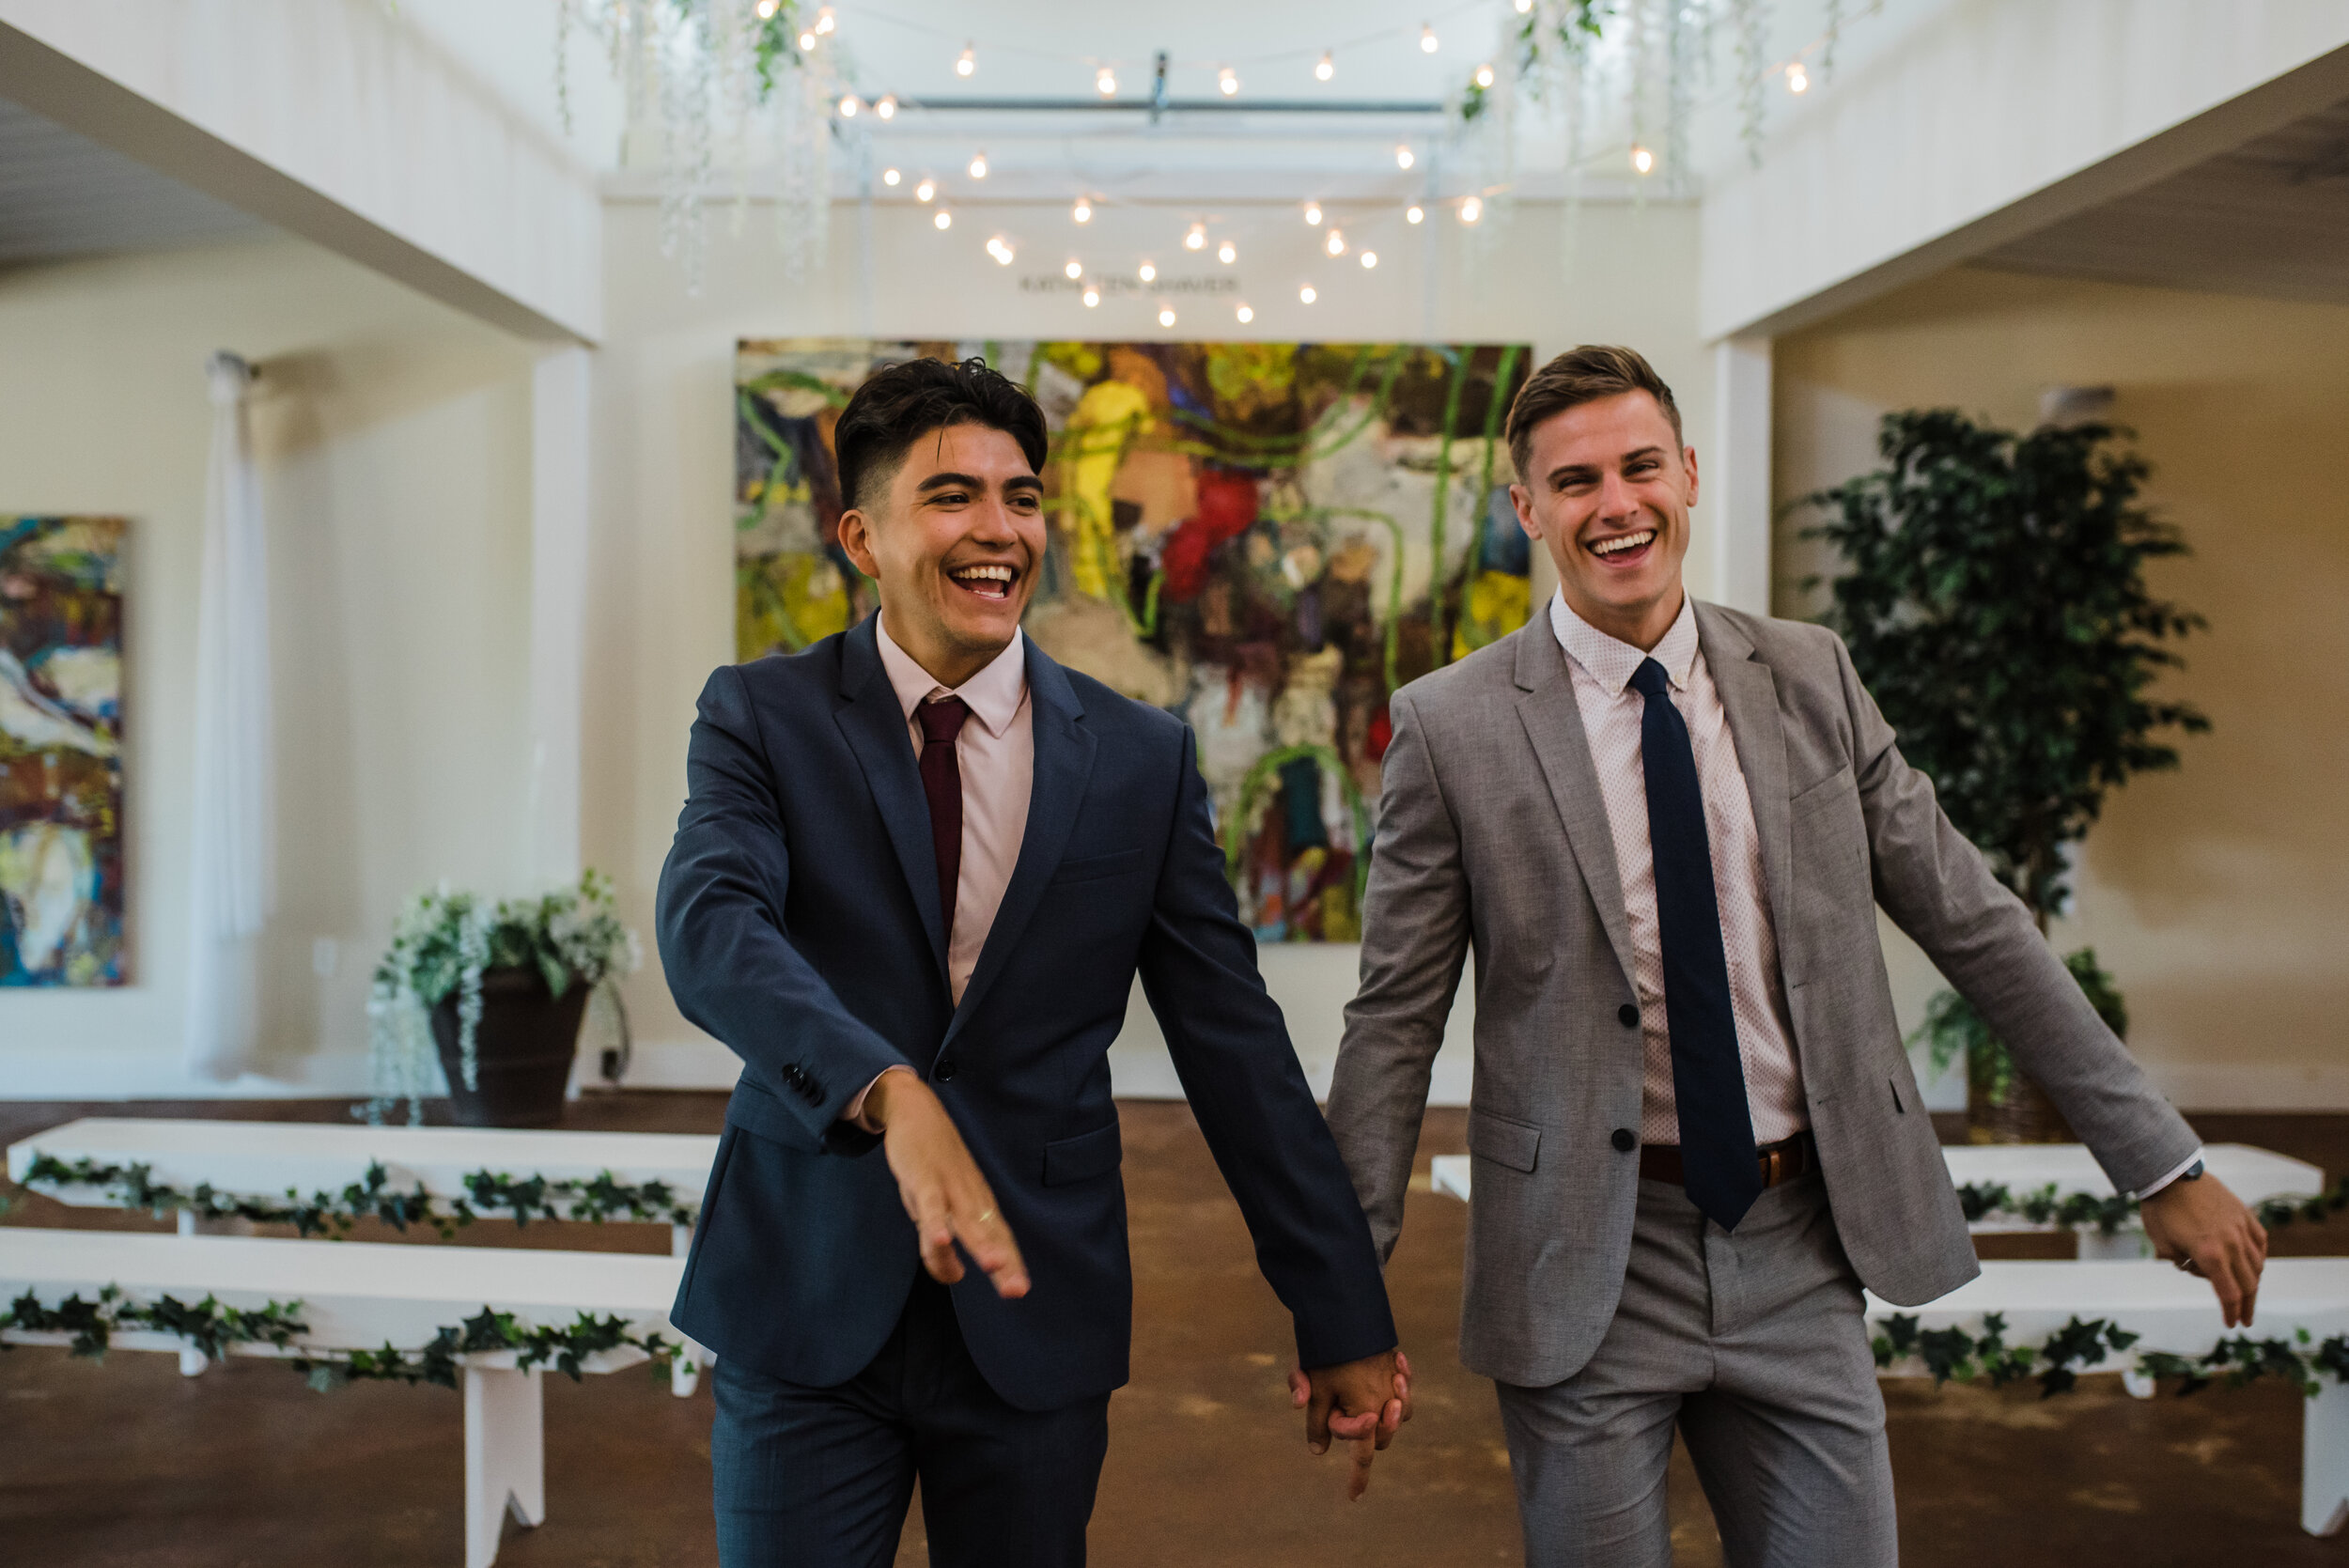 LGBTQ couple walking down the aisle after the ceremony.